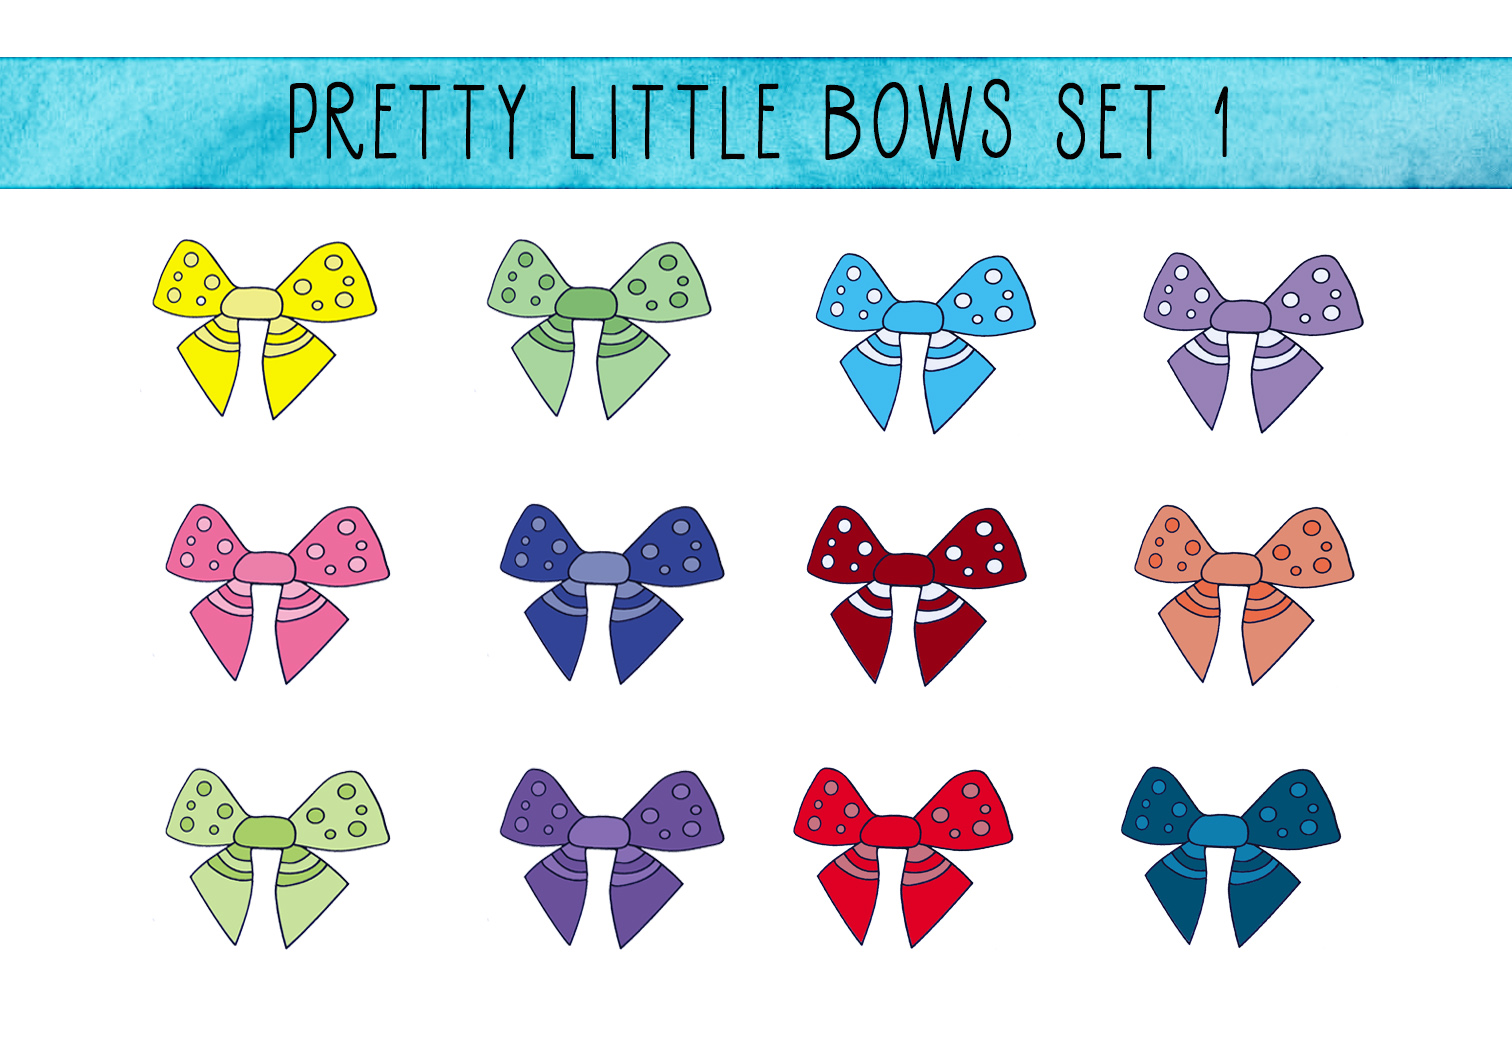 Download Free Pretty Little Bows Set 1 Graphic By Capeairforce Creative Fabrica for Cricut Explore, Silhouette and other cutting machines.